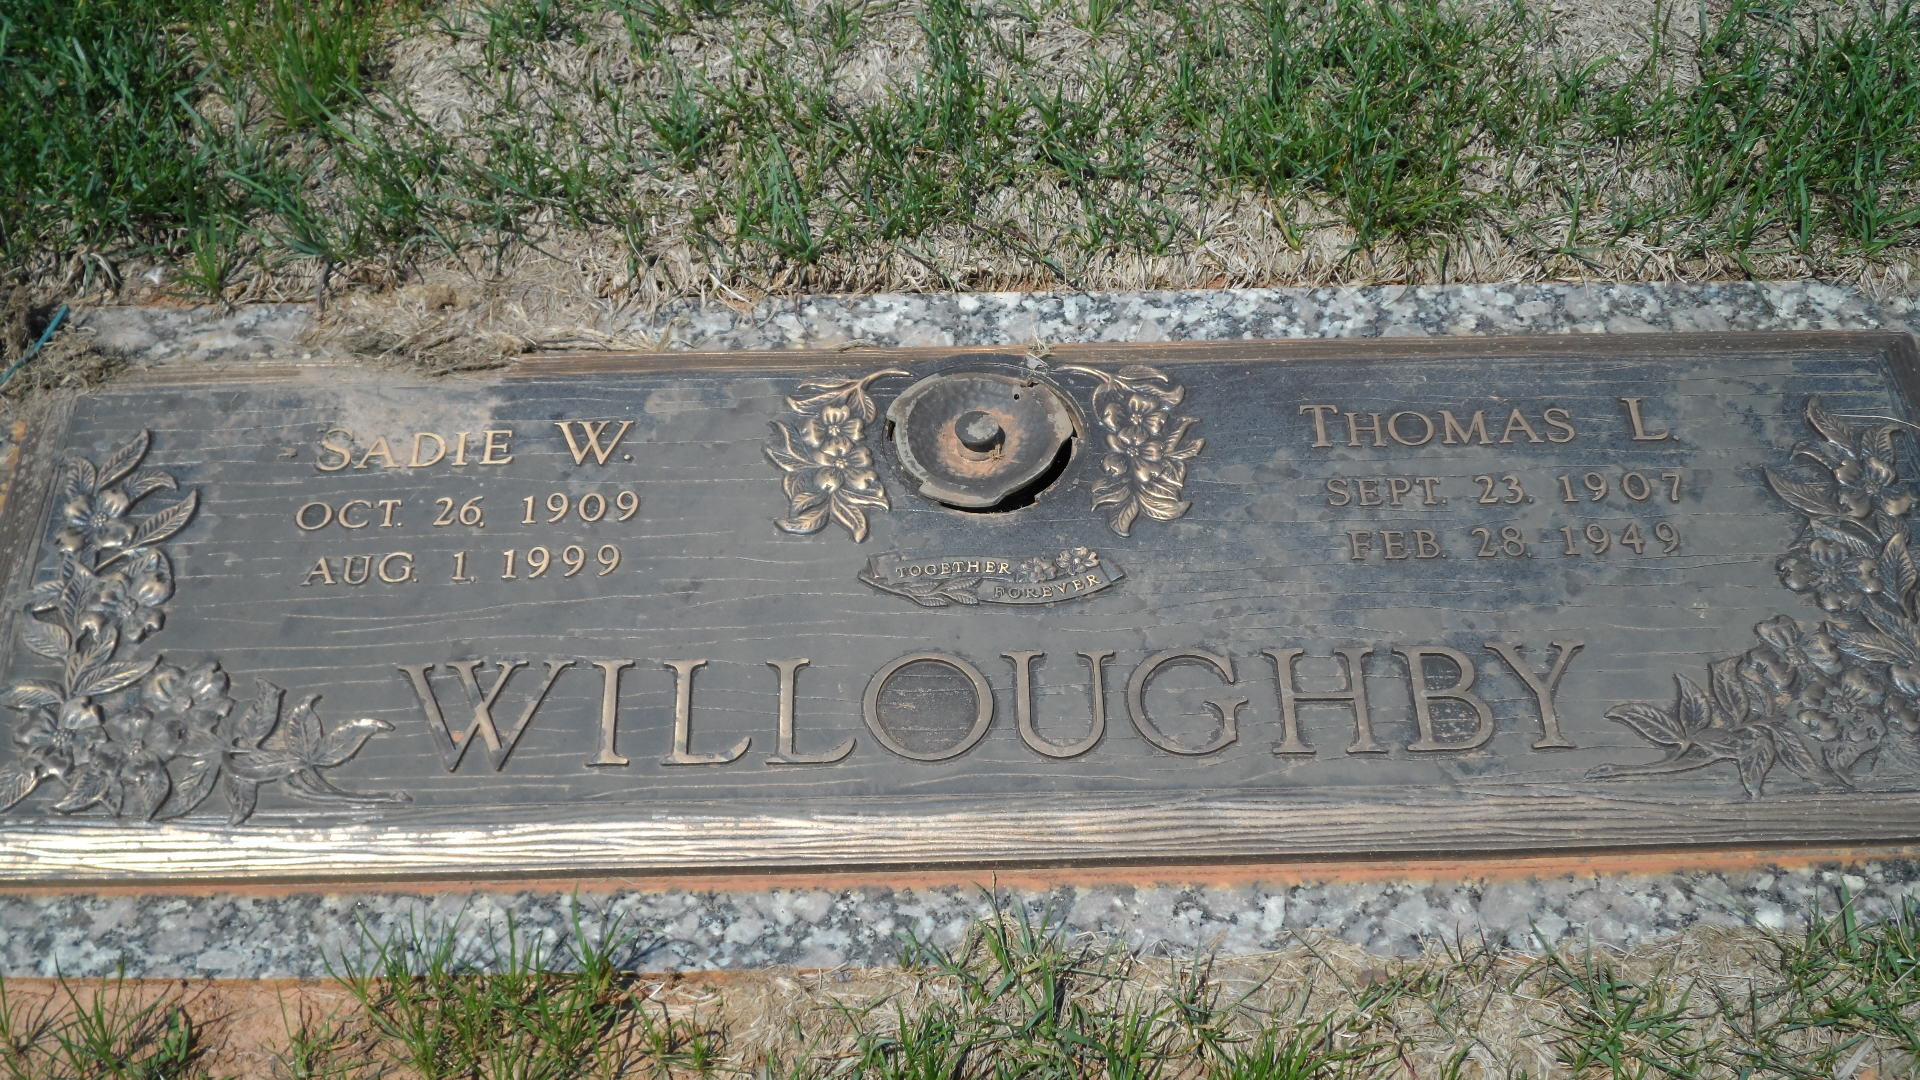 Thomas Leslie Willoughby